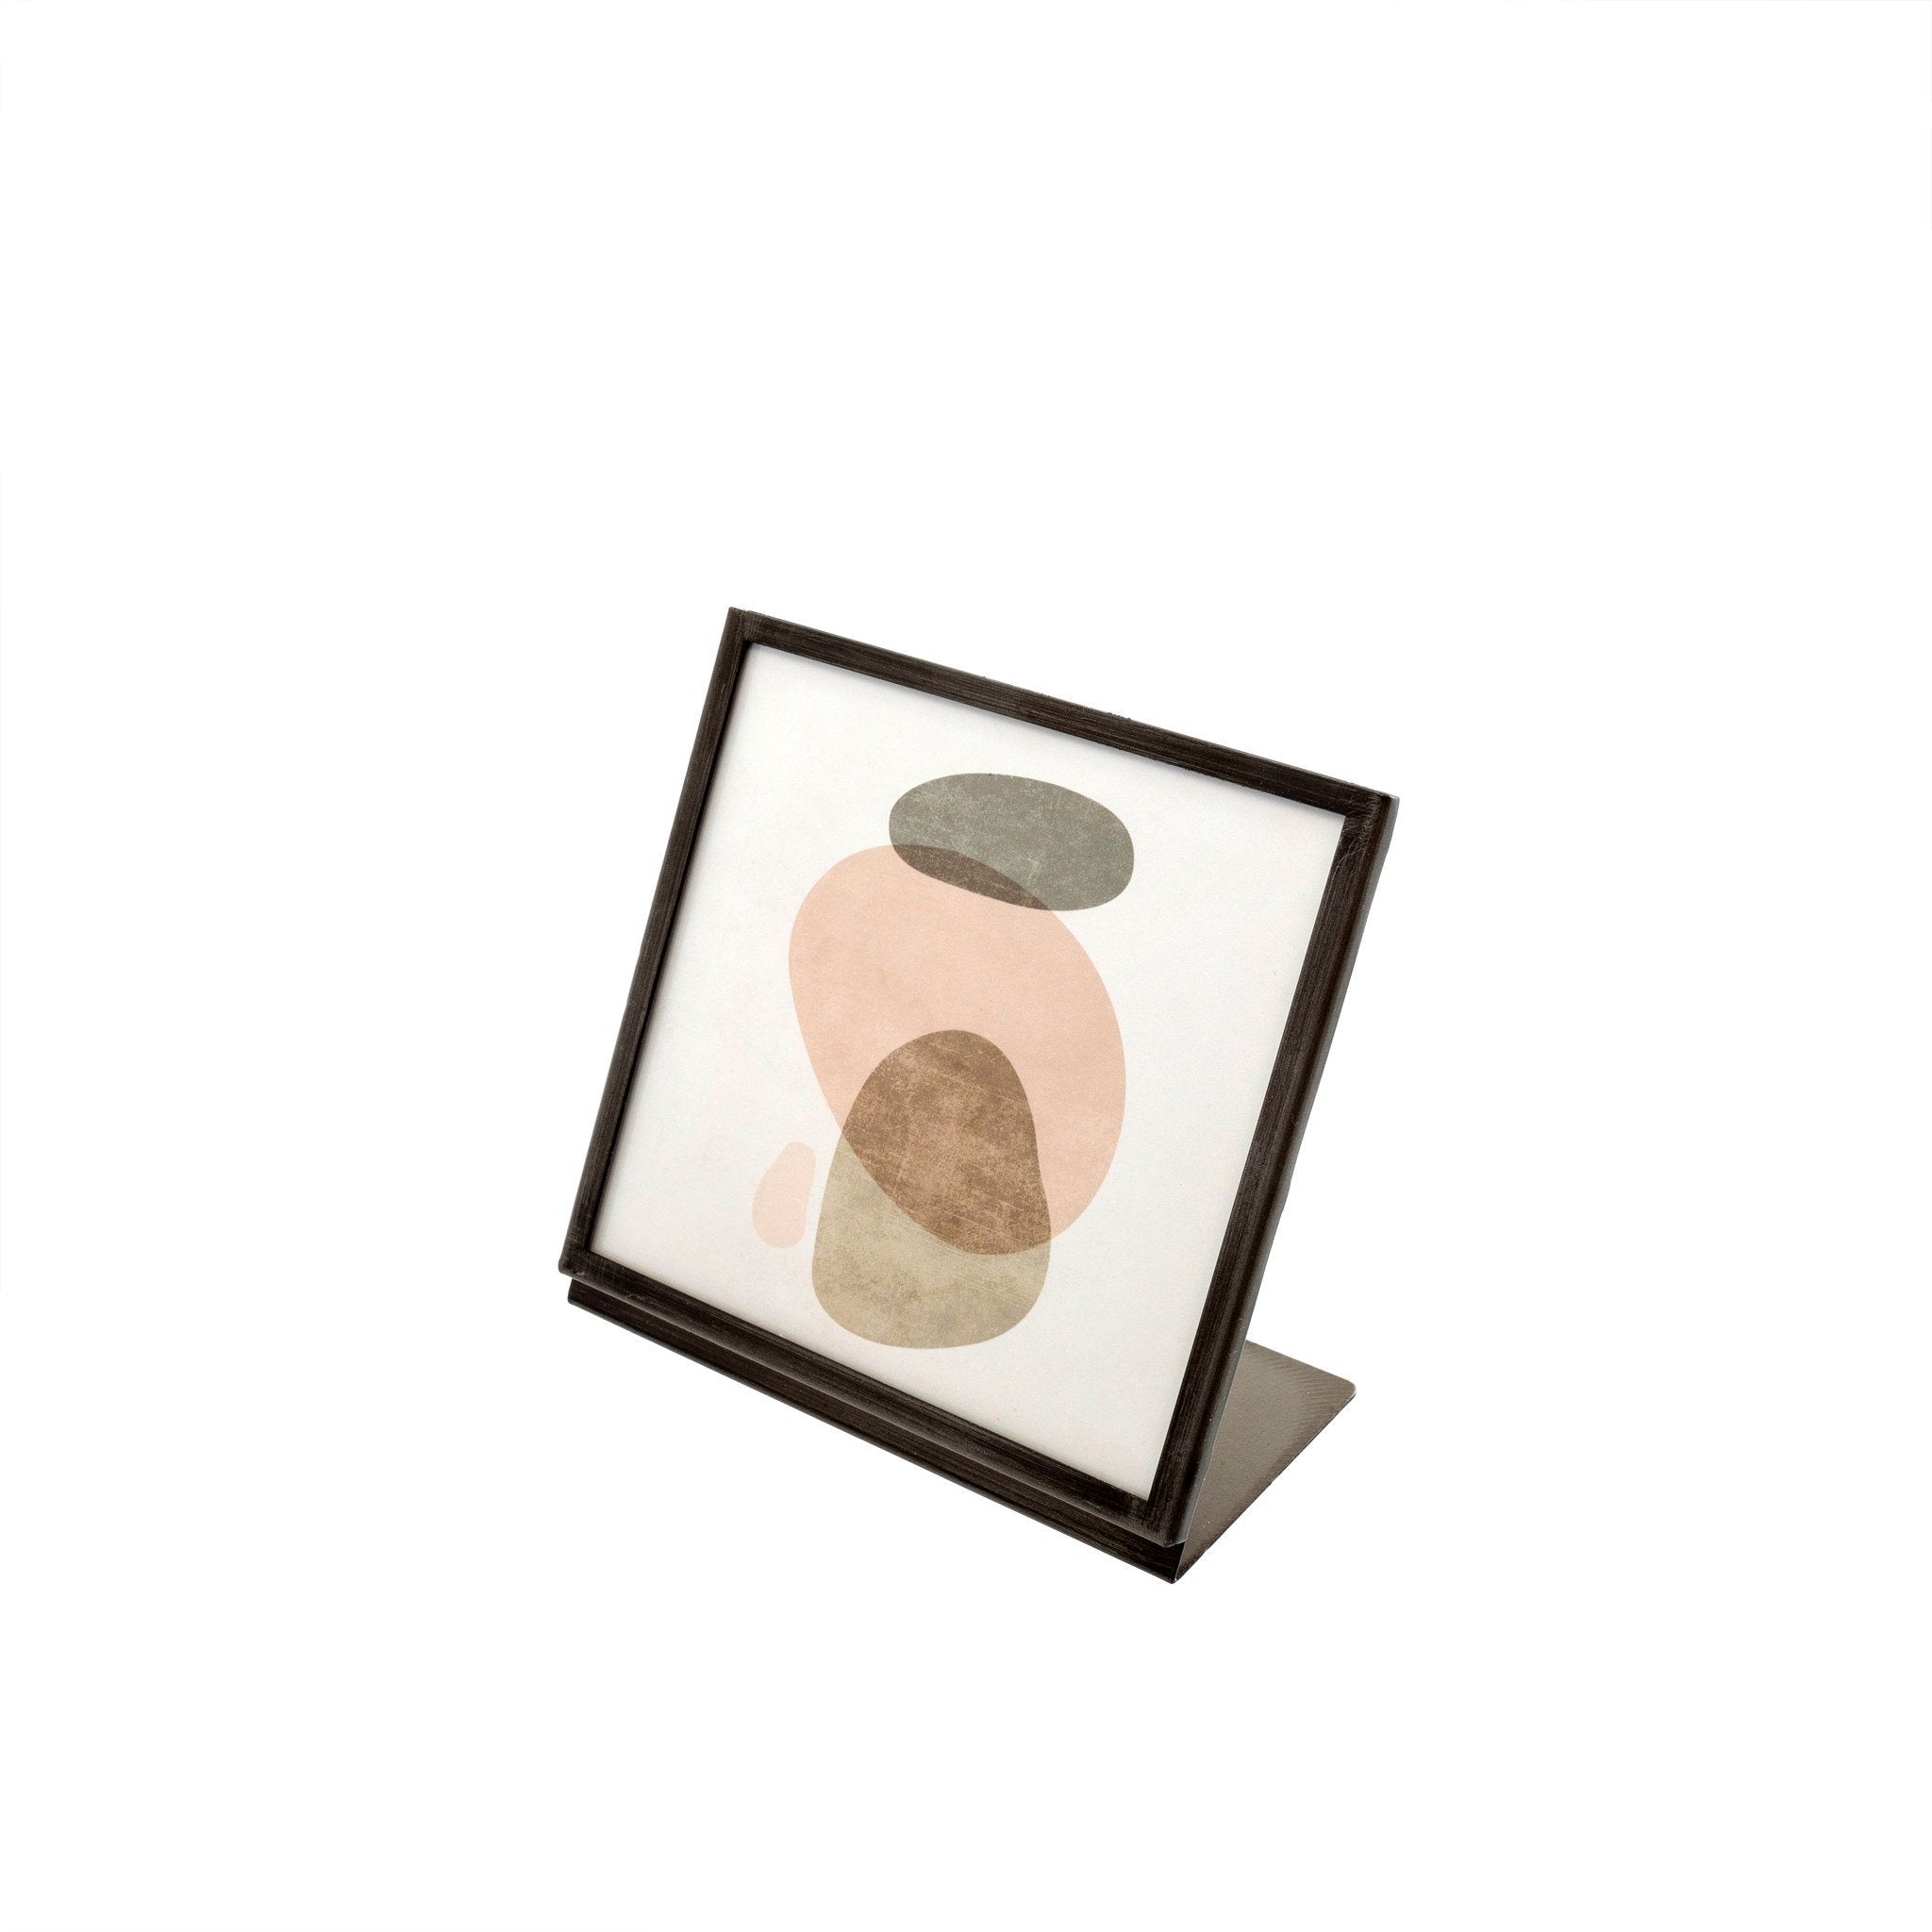 Intaglio Iron Display Frame Picture Frame Indaba Small